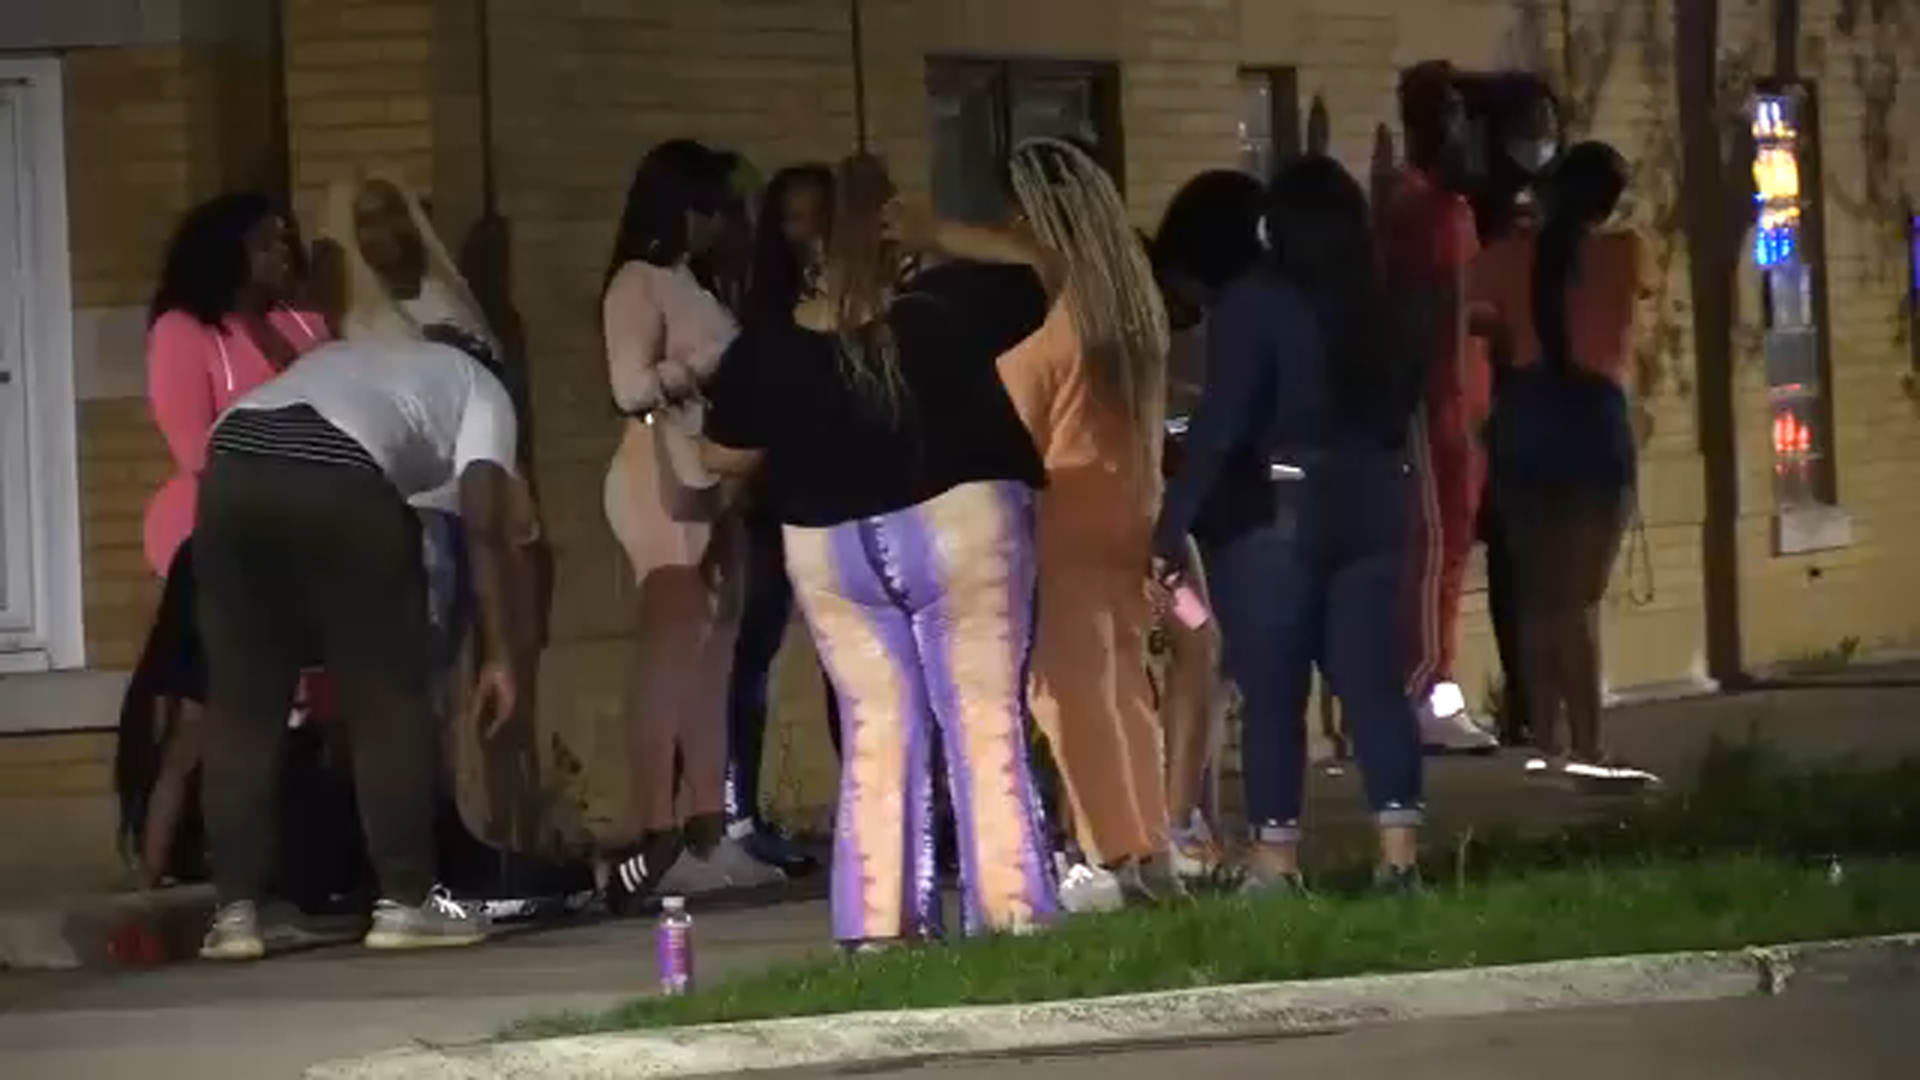 Coronavirus Chicago Cpd Officers Break Up Multiple House Parties Gatherings Despite Stay At Home Order Warnings Abc7 Chicago